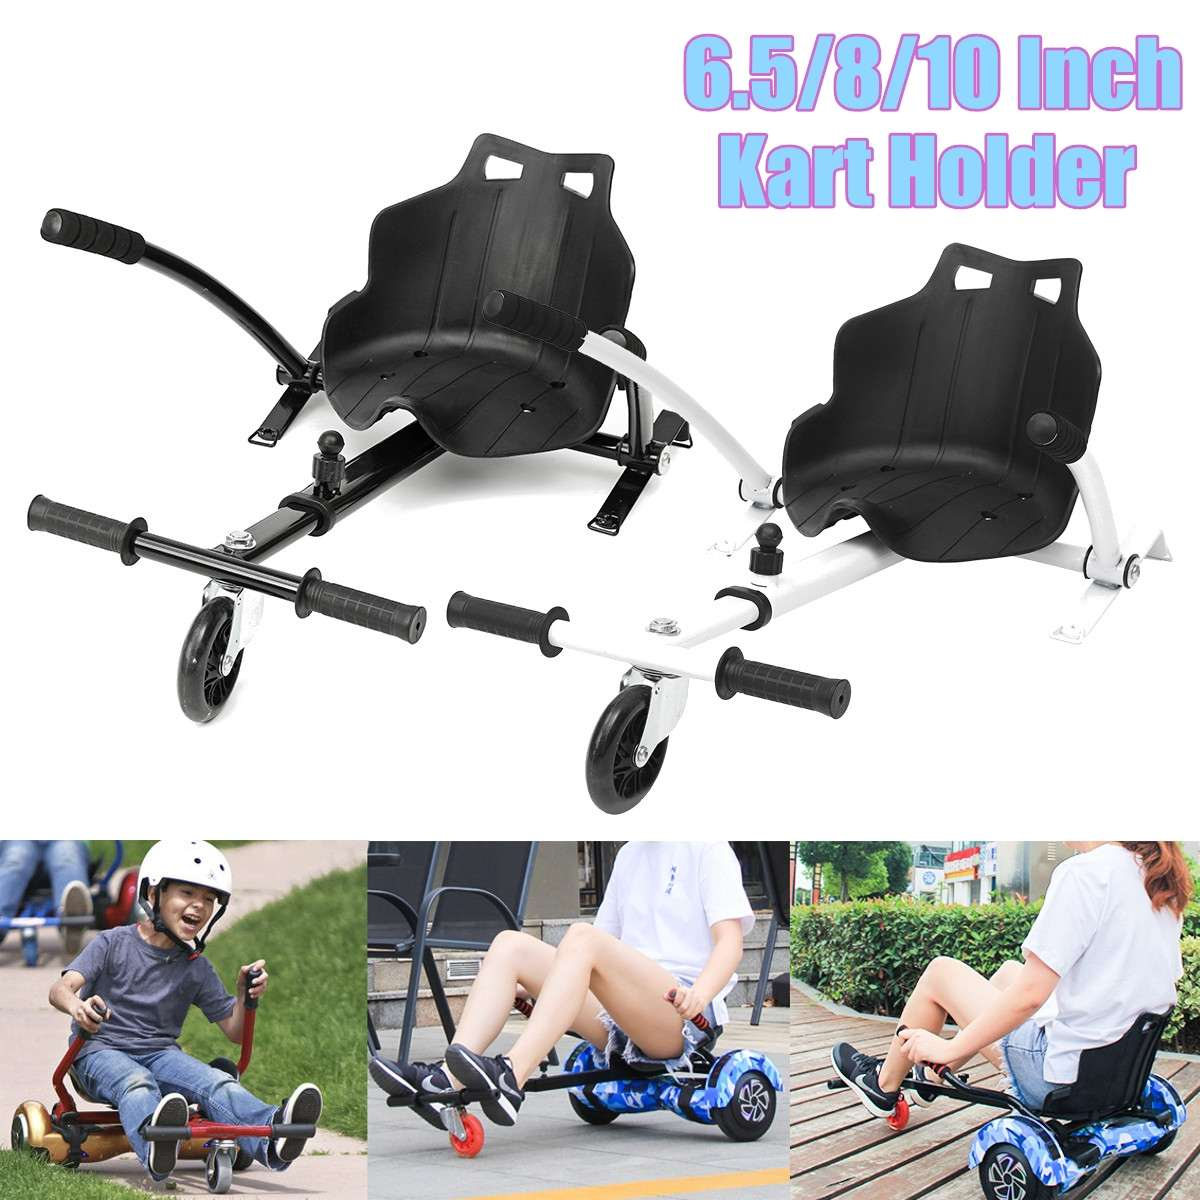 Hoverboard Aller Kart Hover Titulaire Panier Siège Stand Rack pour 6.5